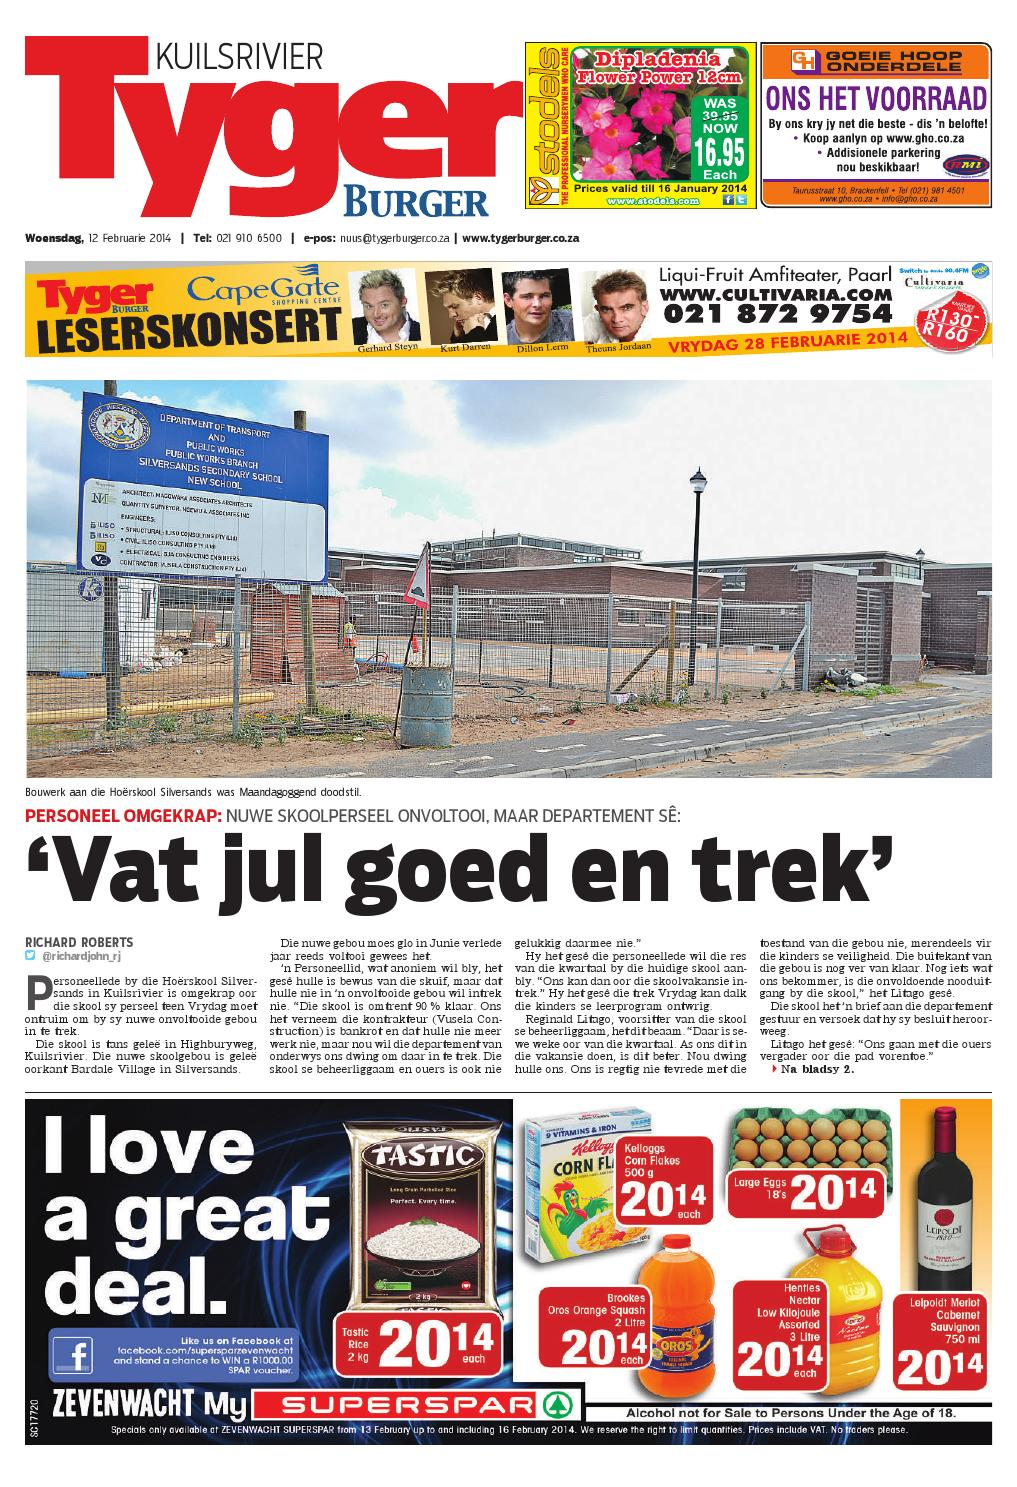 Tygerburger Kuilsrivier 12 Feb 2014 By Tygerburger Newspaper Issuu - Studeer Aanlyn Nz